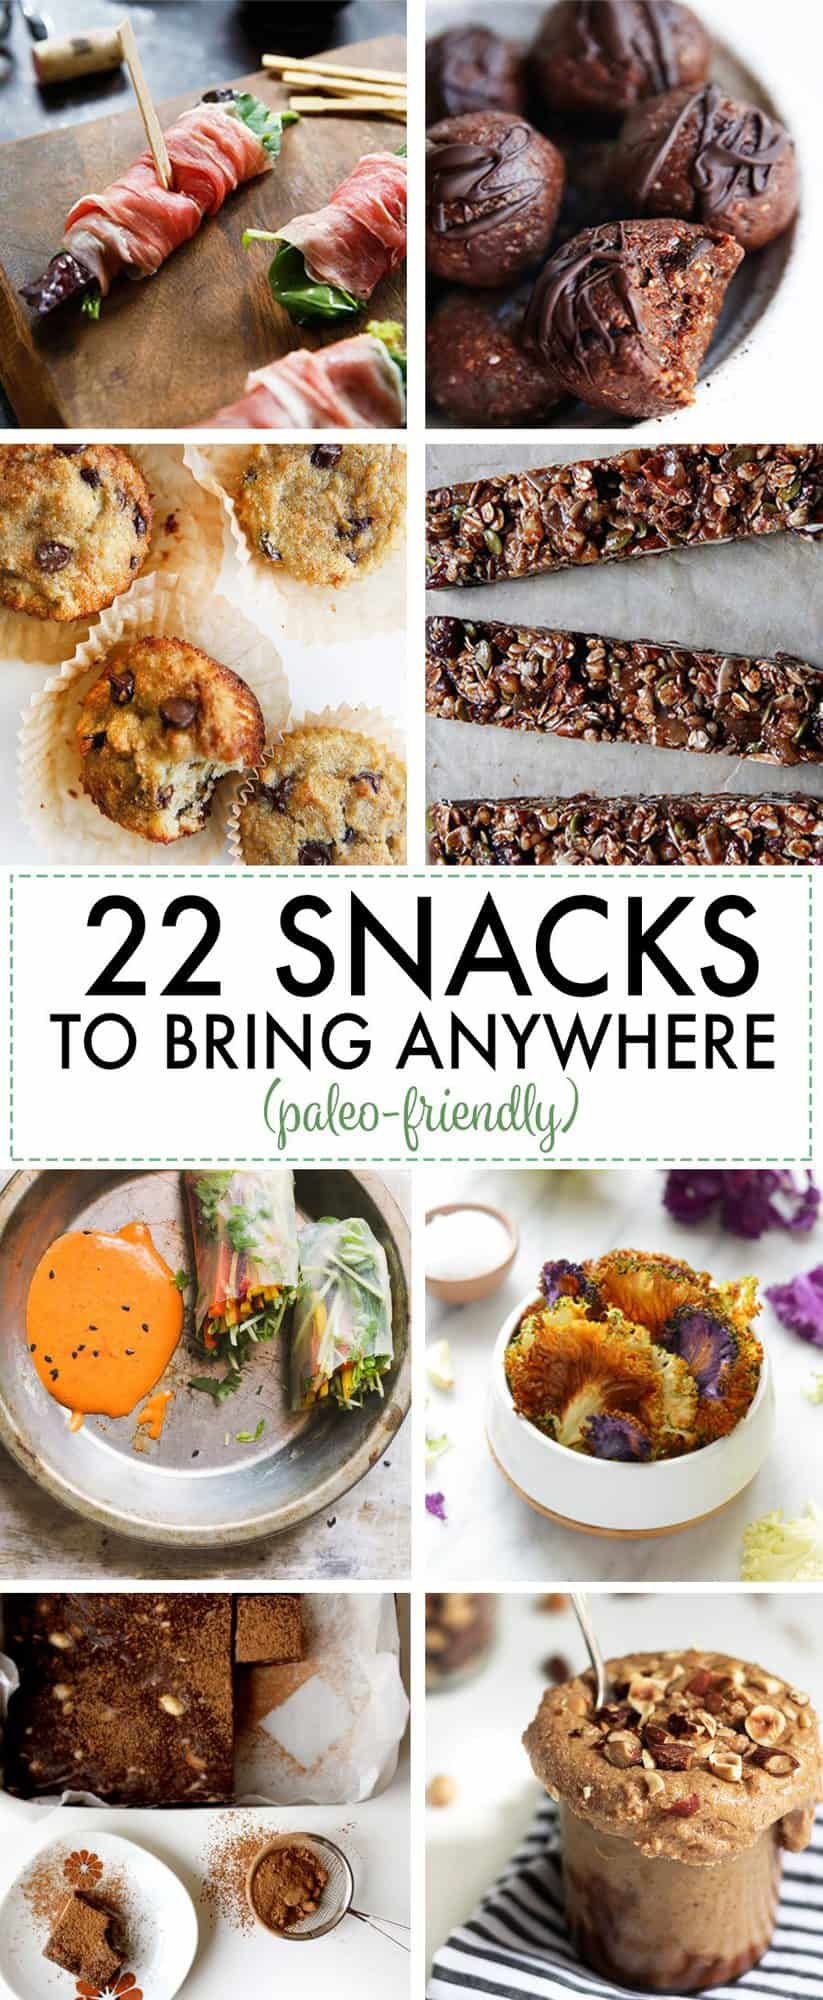 20 Healthy Snacks To Bring Anywhere